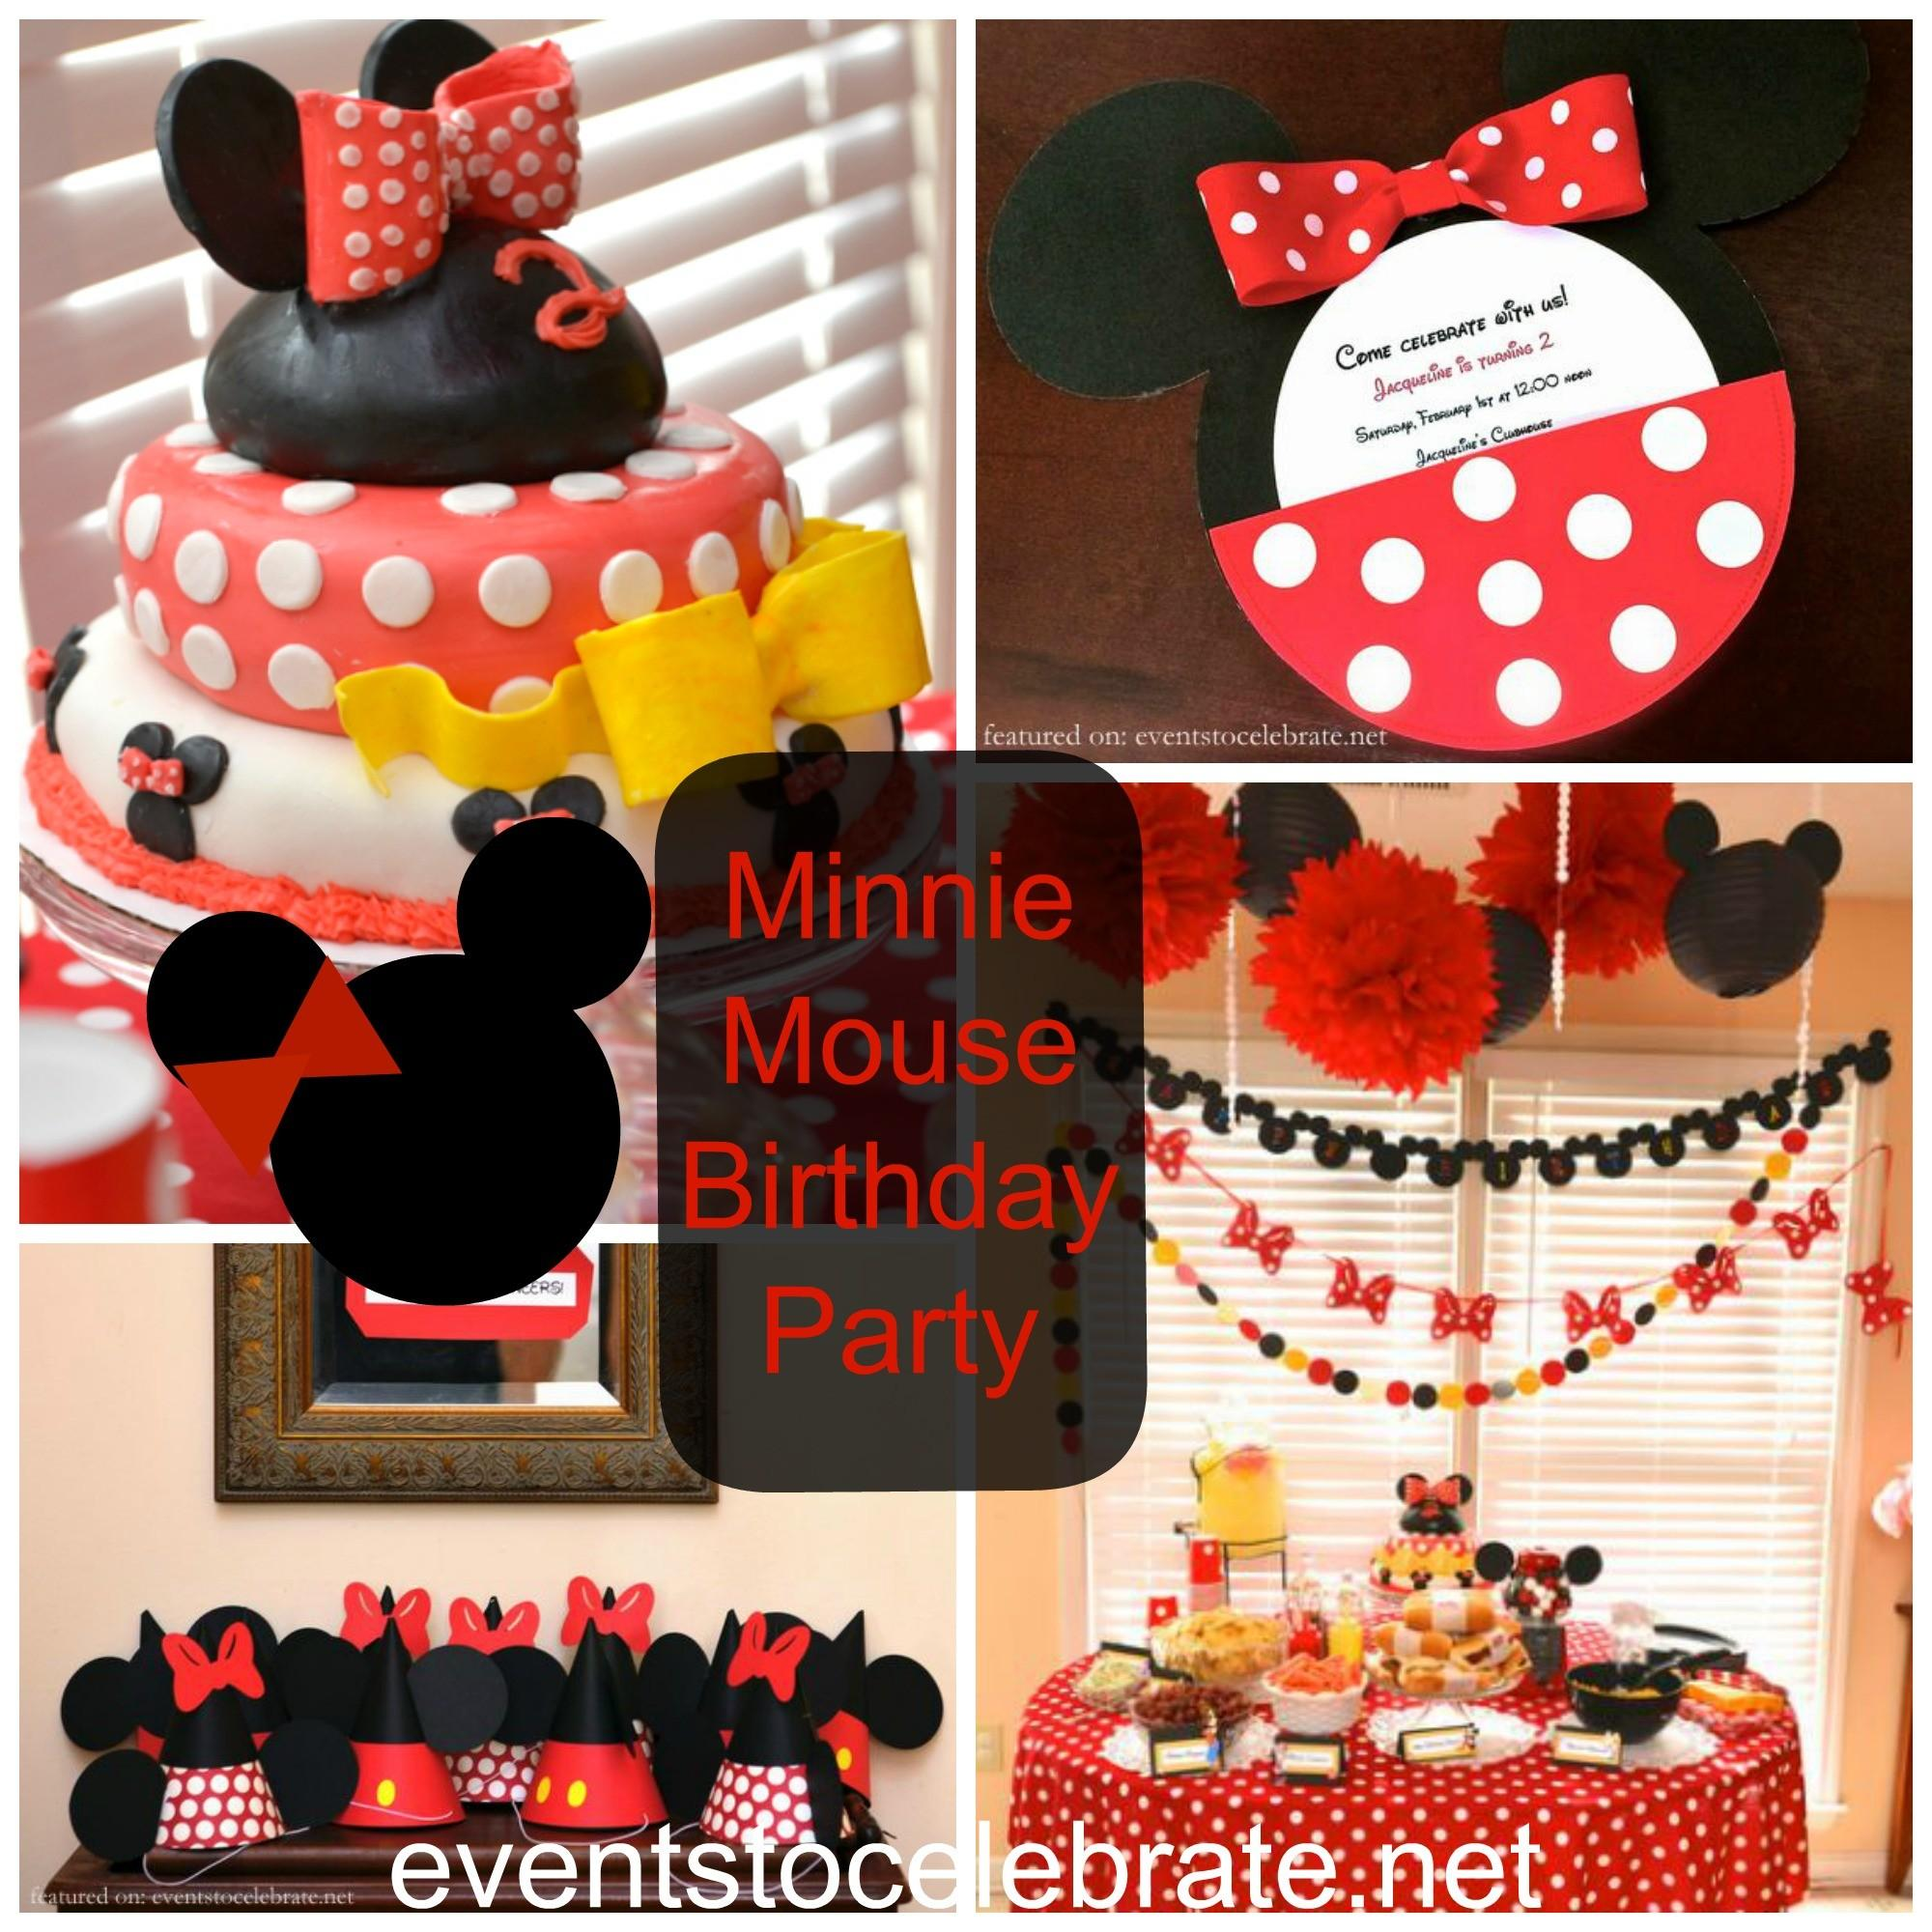 Minnie Mouse Birthday Party Eventstocelebrate